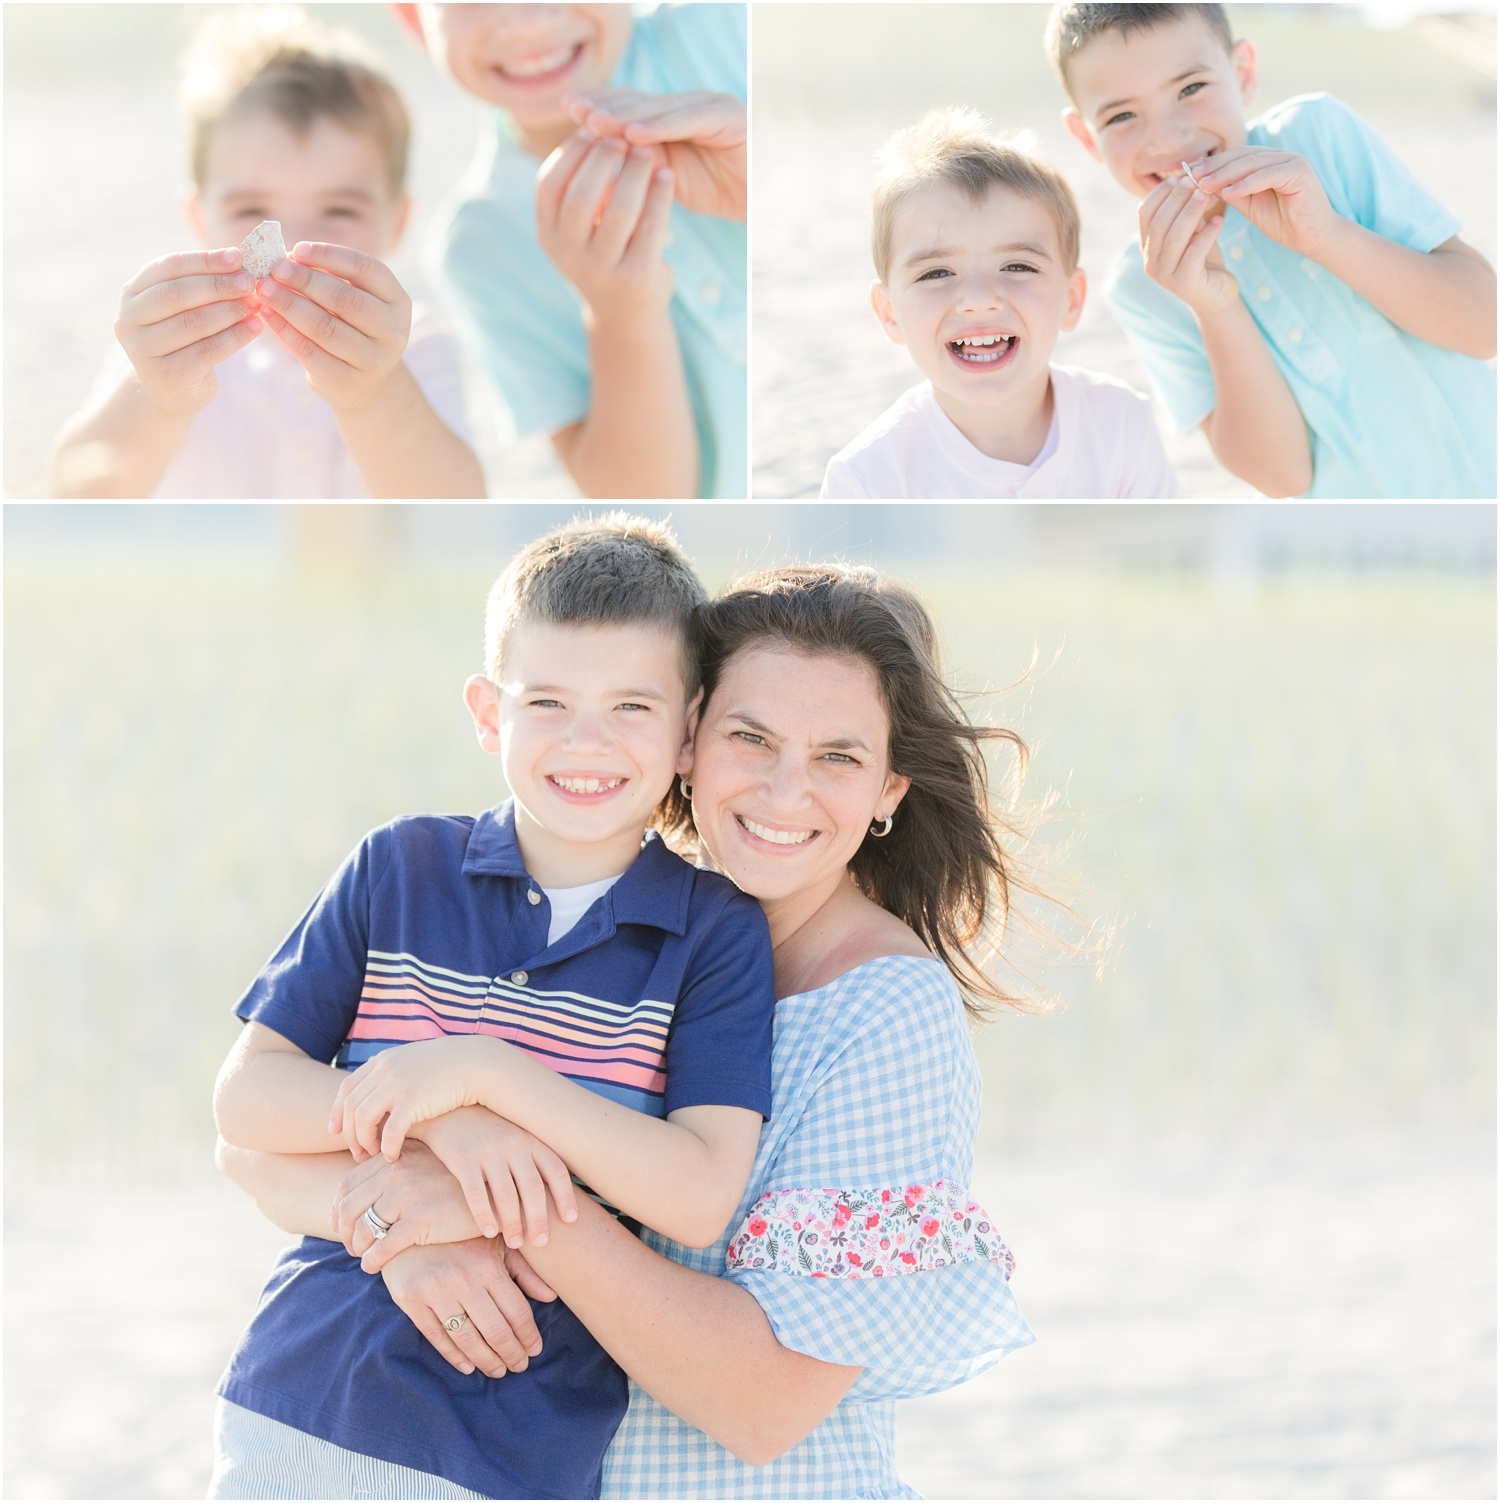 Fun family photos with kids at the beach in Lavallette.